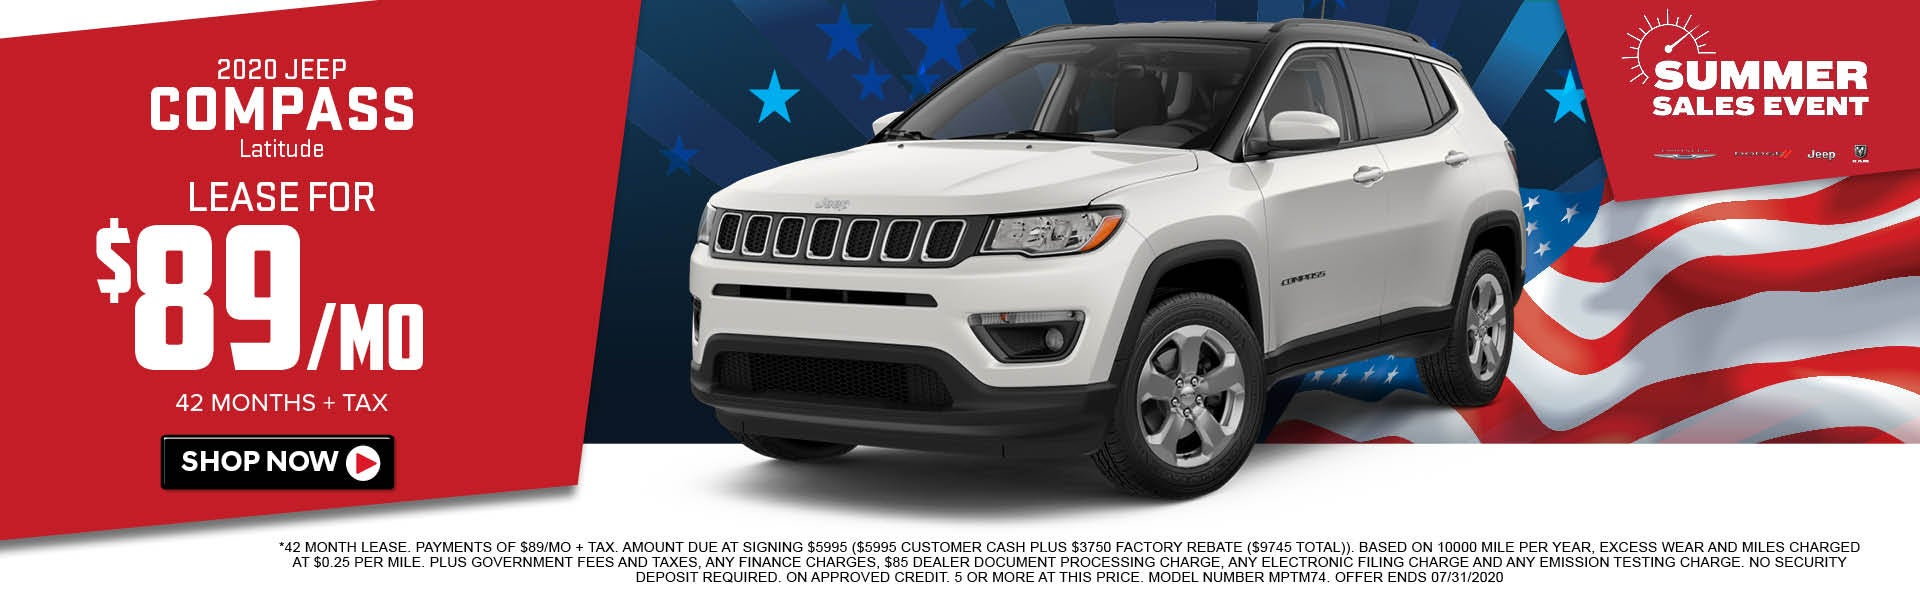 2020 jeep compass dch chrysler dodge jeep ram fiat of temecula specials temecula ca dch chrysler jeep dodge of temecula